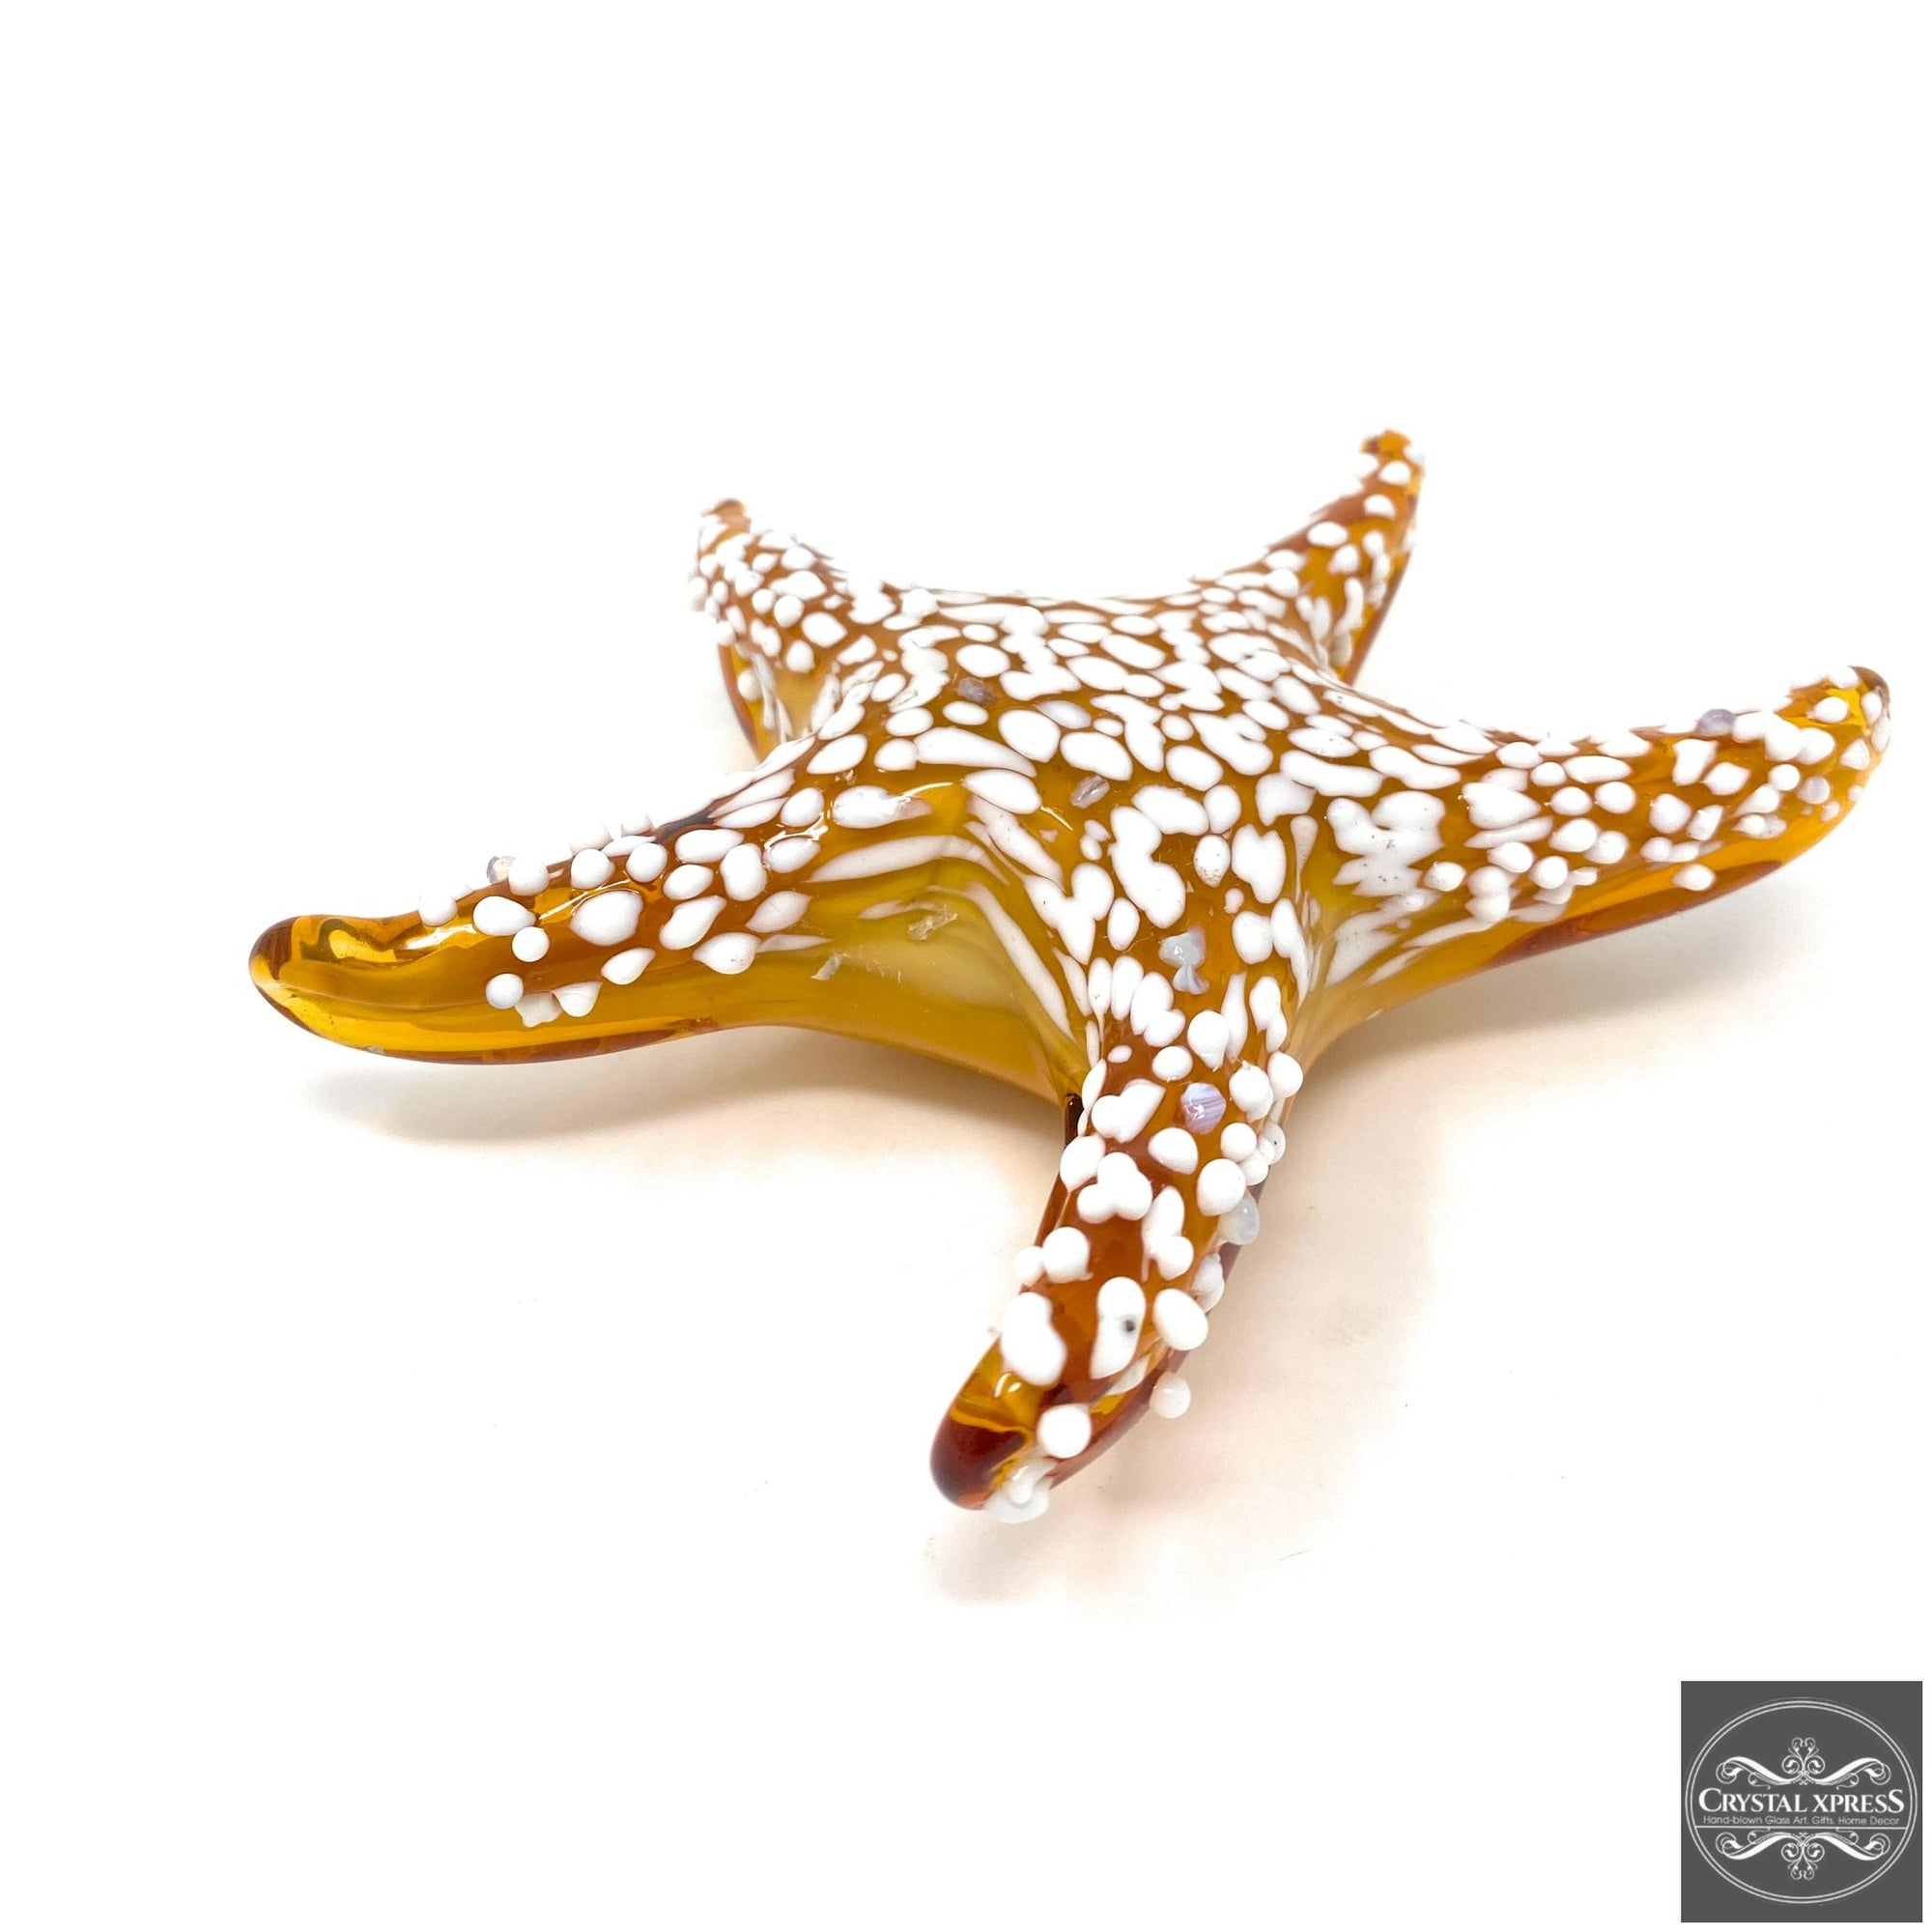 "7.5"" Amber with White Dots Hand Blown Glass Starfish Figurine SculptureCrystal Xpress"